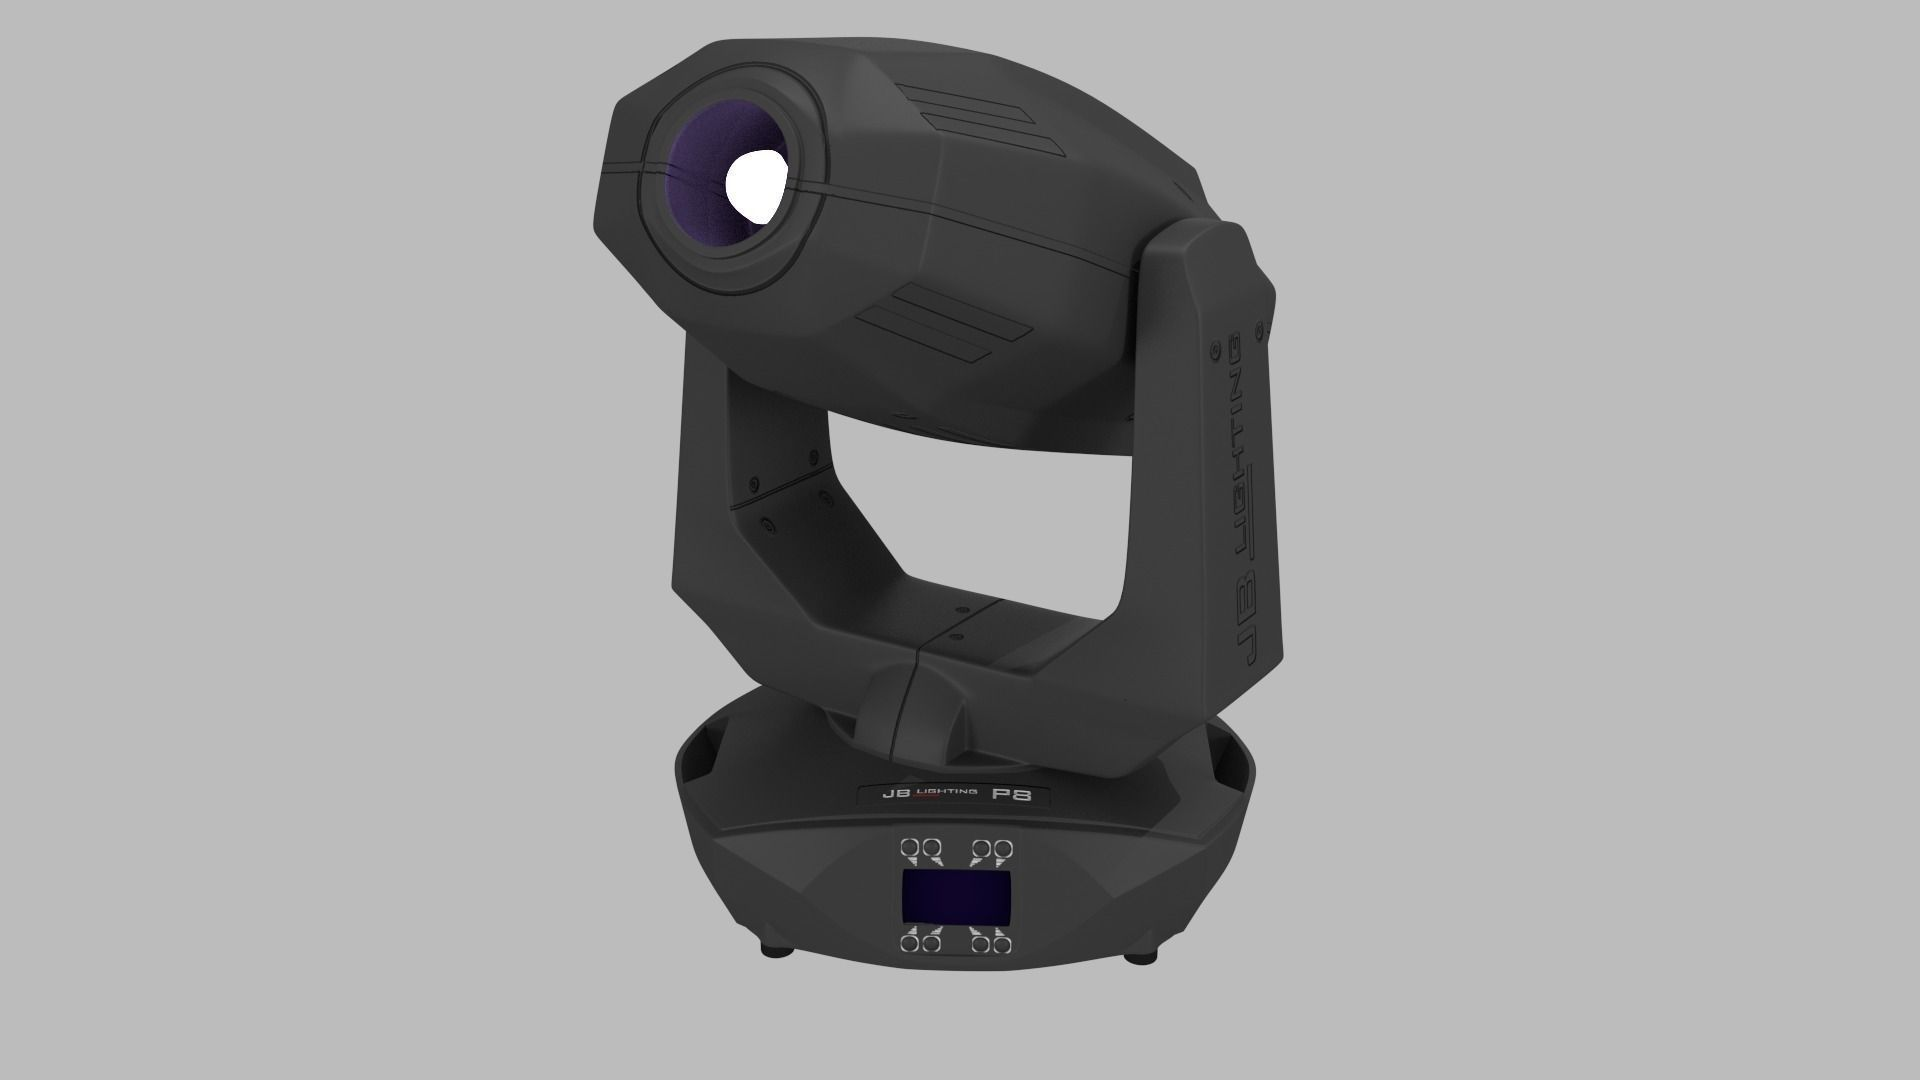 Jb Lighting Varyscan P6 Jb Lighting Varyscan P8 Moving Head 3d Model